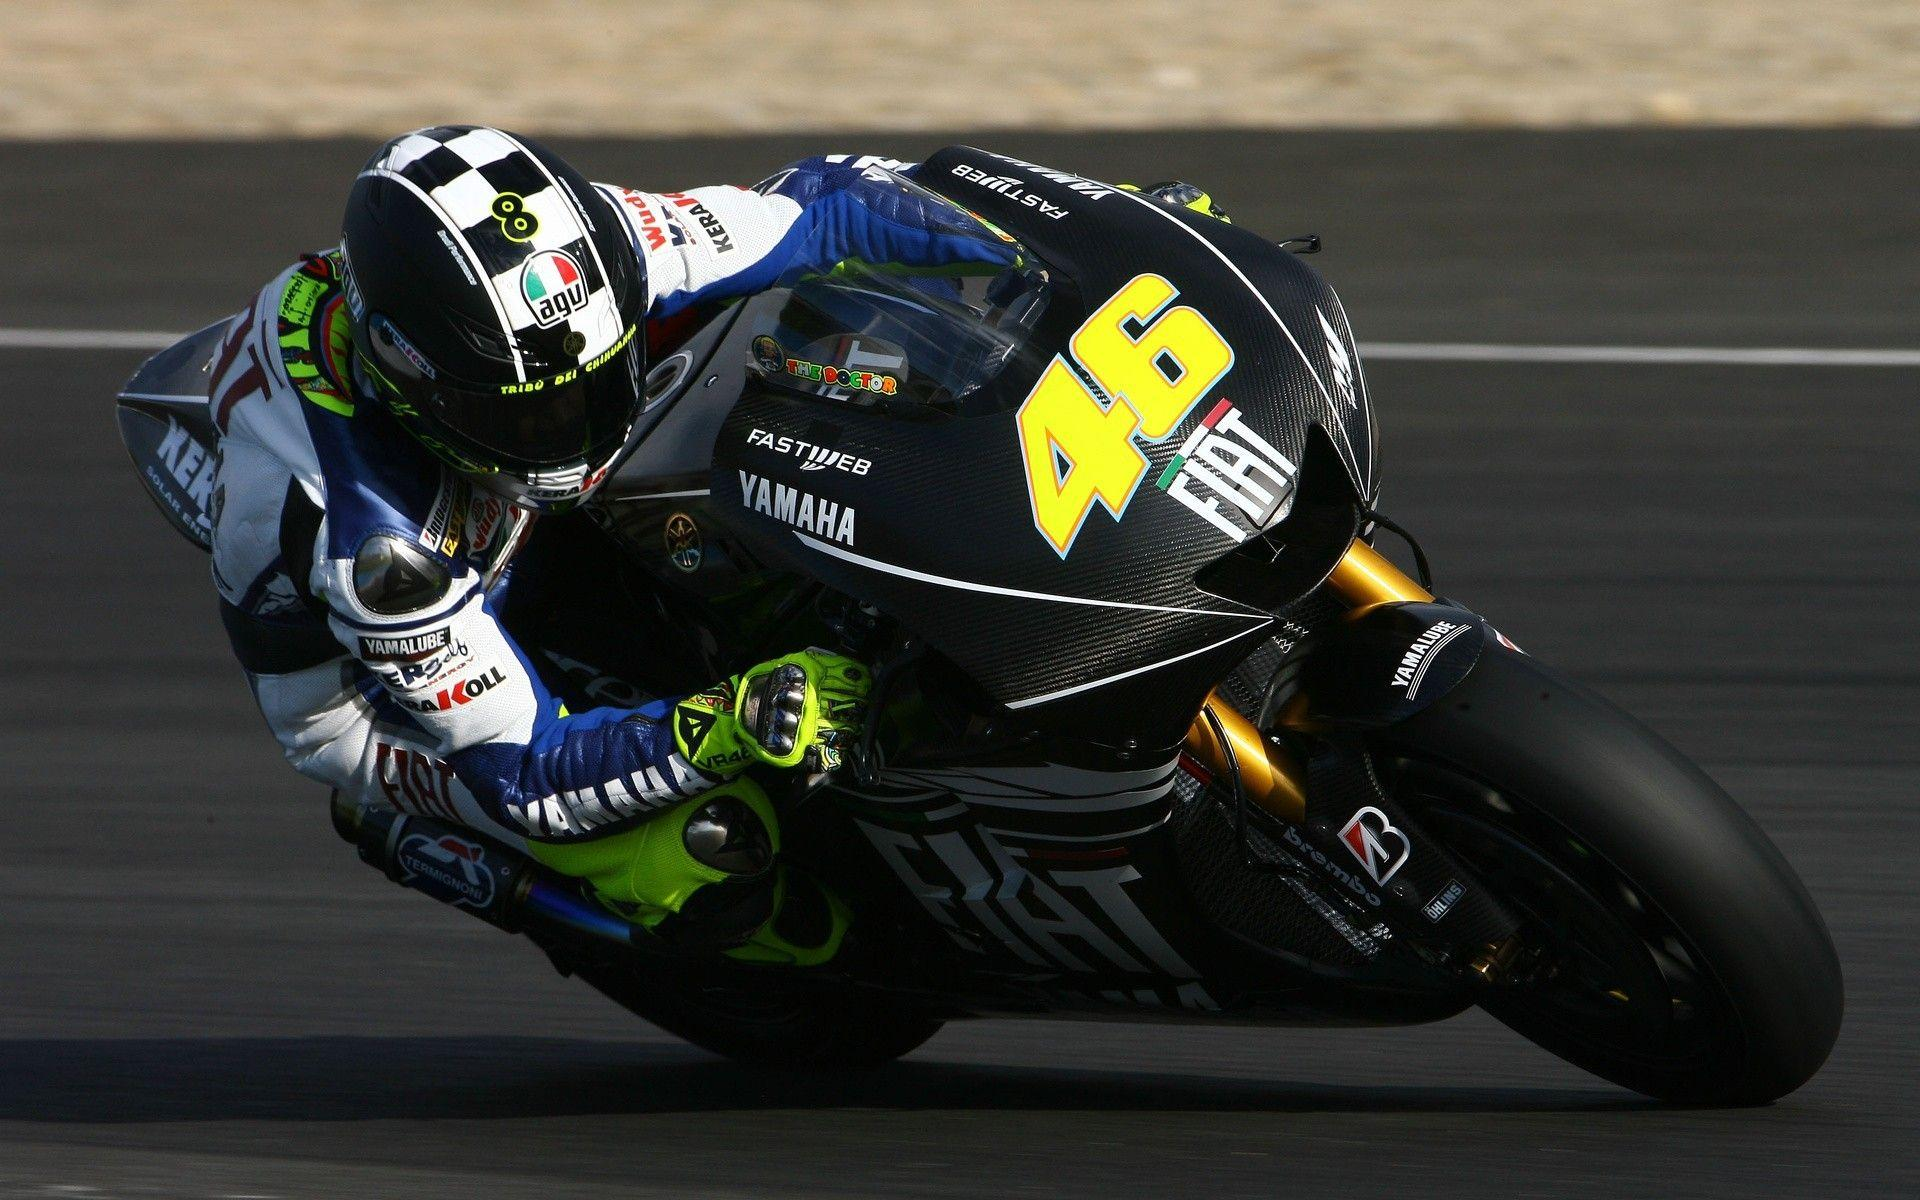 Gp valentino rossi the doctor fiat yamaha wallpapers